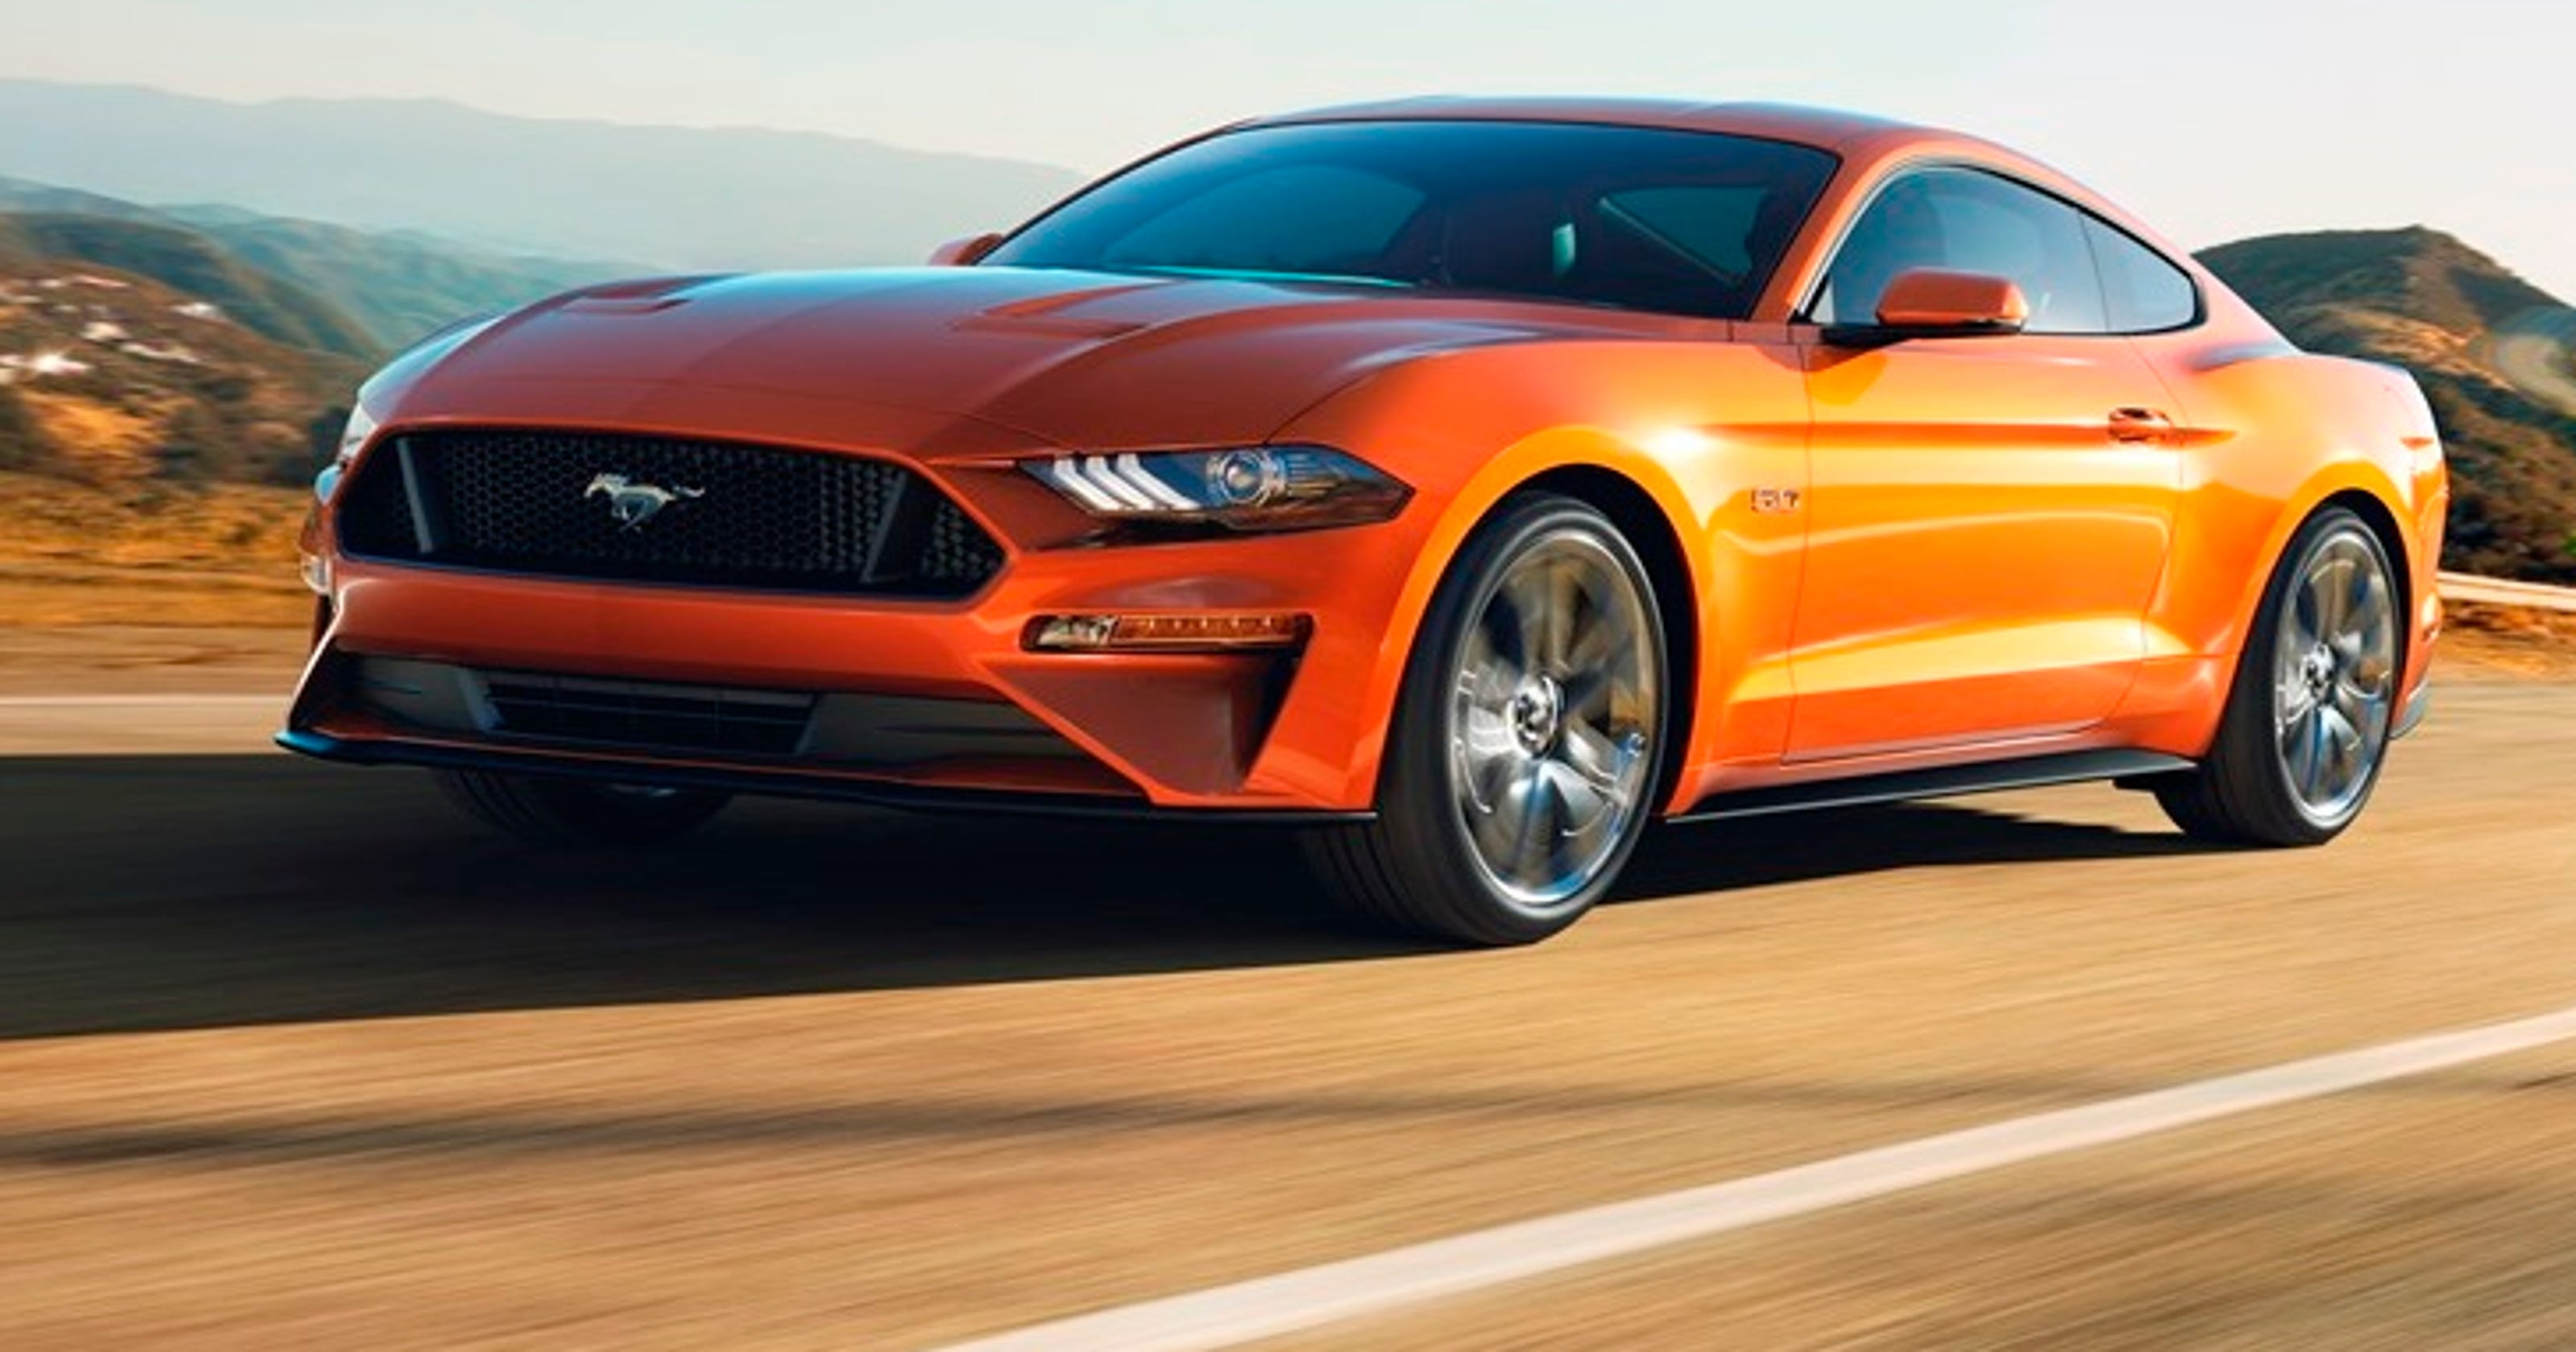 Mustang Gt 0 60 >> Ford Says Mustang S Acceleration Will Blow Doors Off Rivals